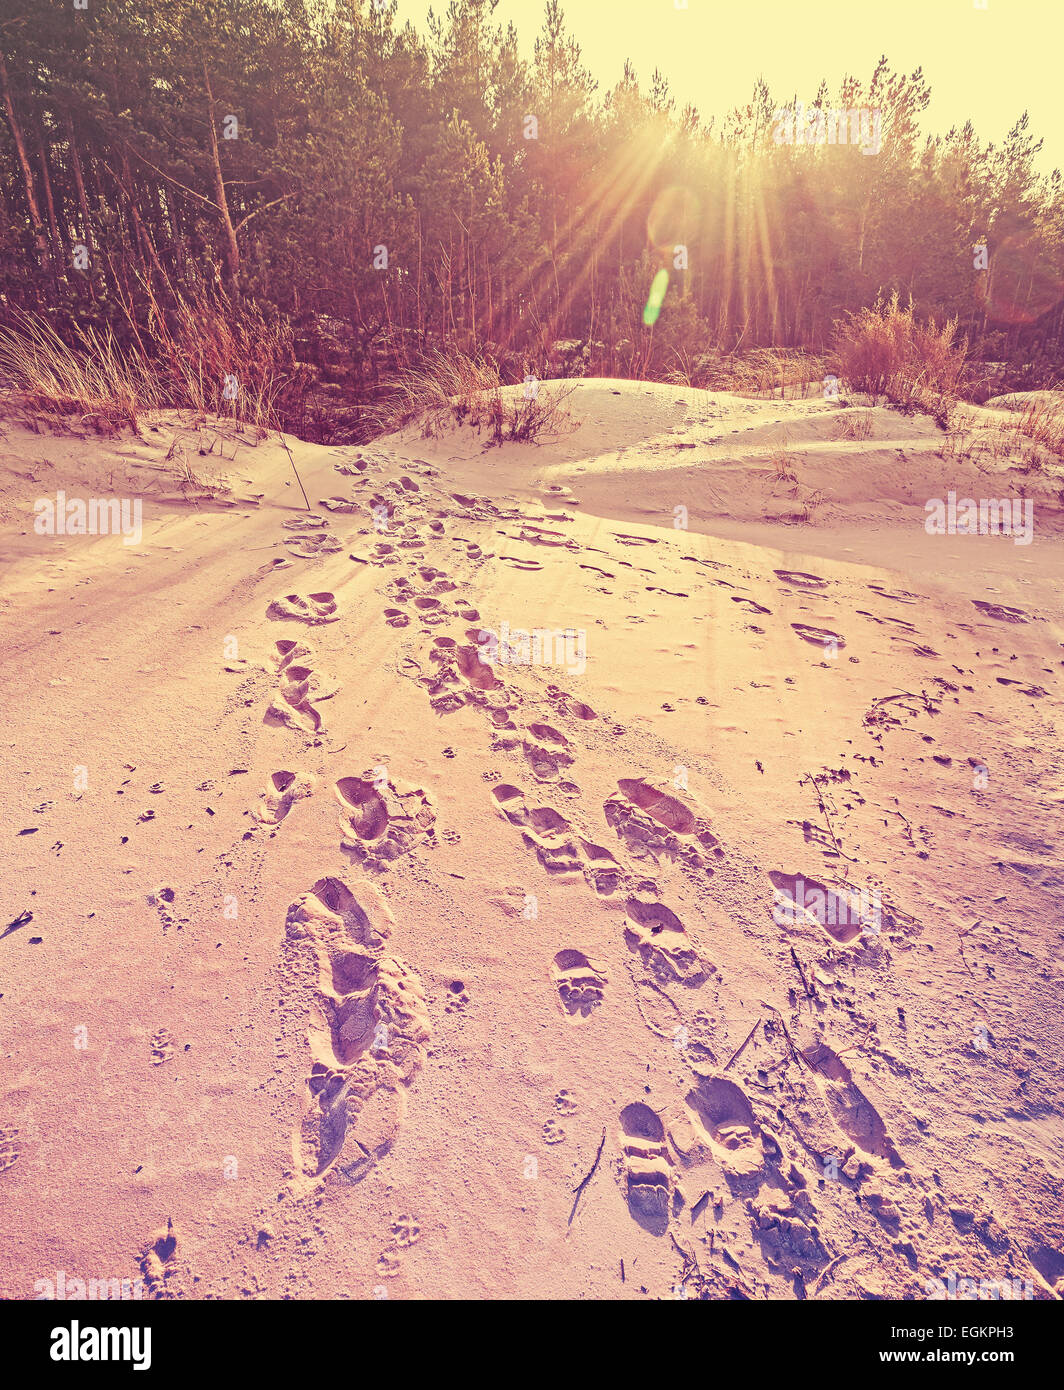 Footprints on sand, retro stylized nature background with flare effect. - Stock Image